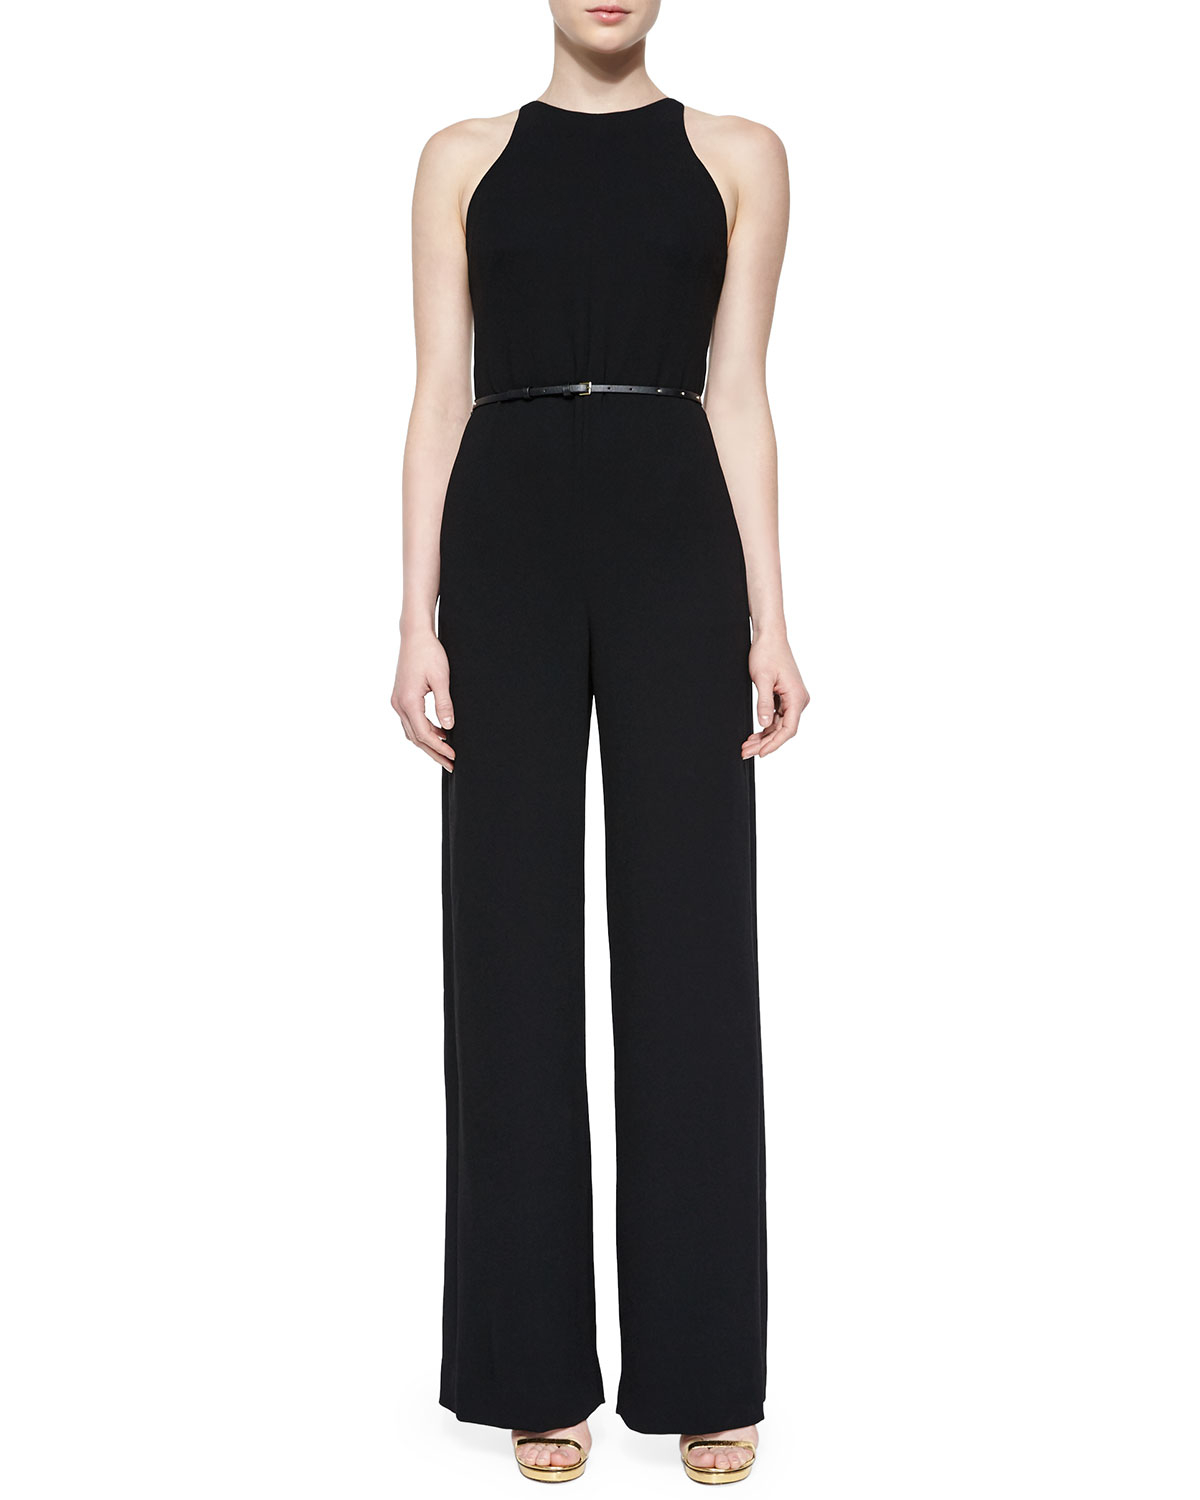 With a chic blazer, leather jacket, or coat, there's no end to how you could style the Lulus Enticing Endeavors Black Jumpsuit! This sleeveless jumpsuit is made from lightly textured knit with a squared-off neckline, and seamed bodice/5().